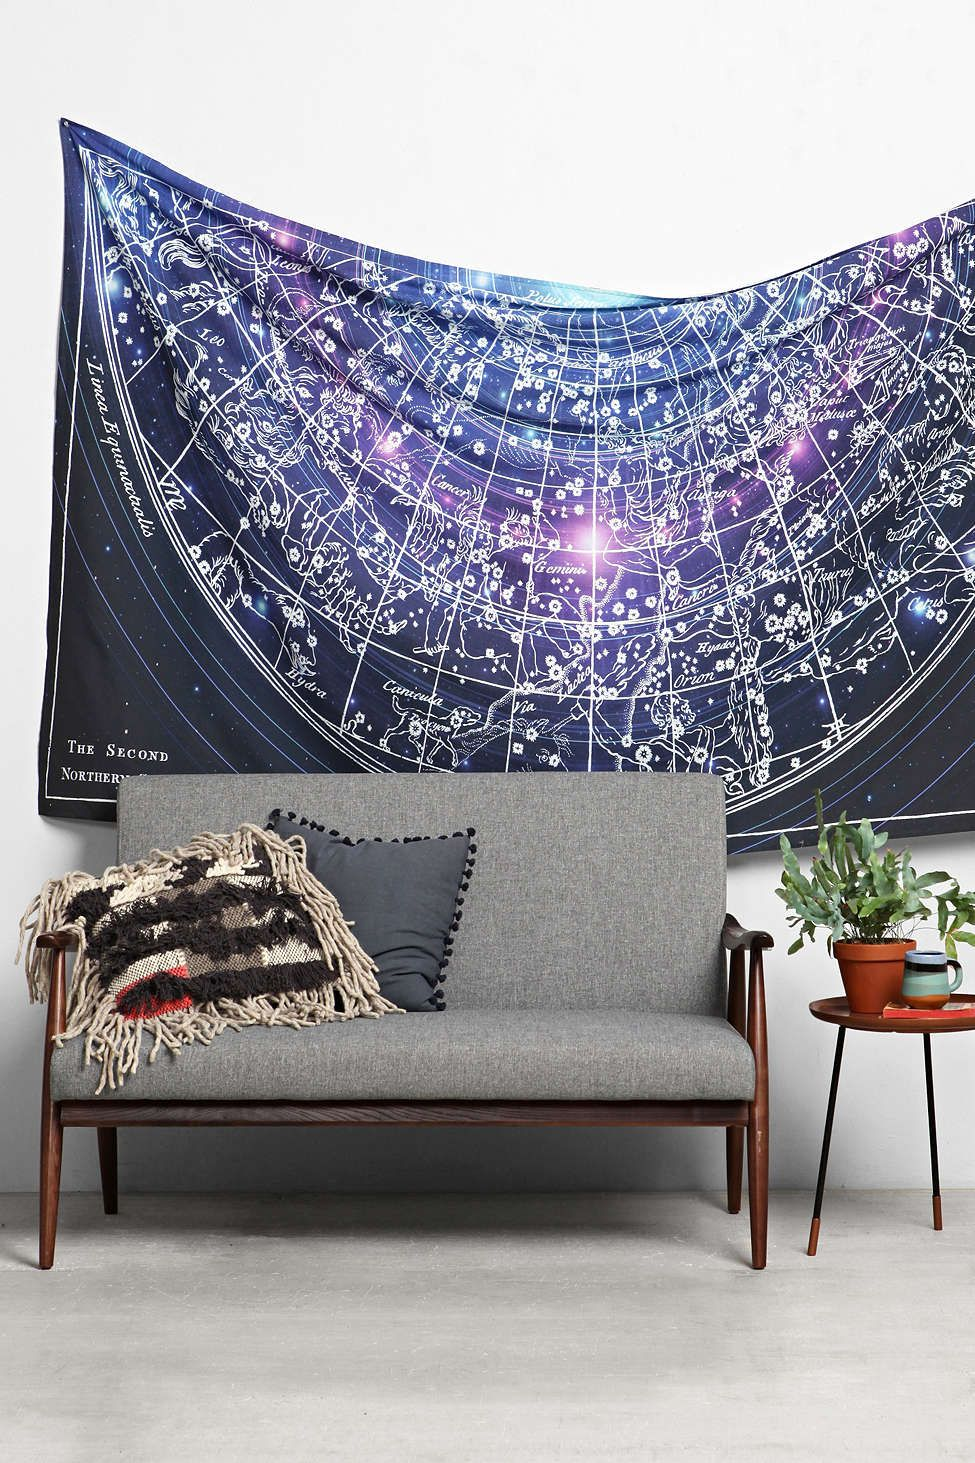 Urban outfitters bedroom tapestry - Magical Thinking Cosmic Astrology Tapestry Urban Outfitters